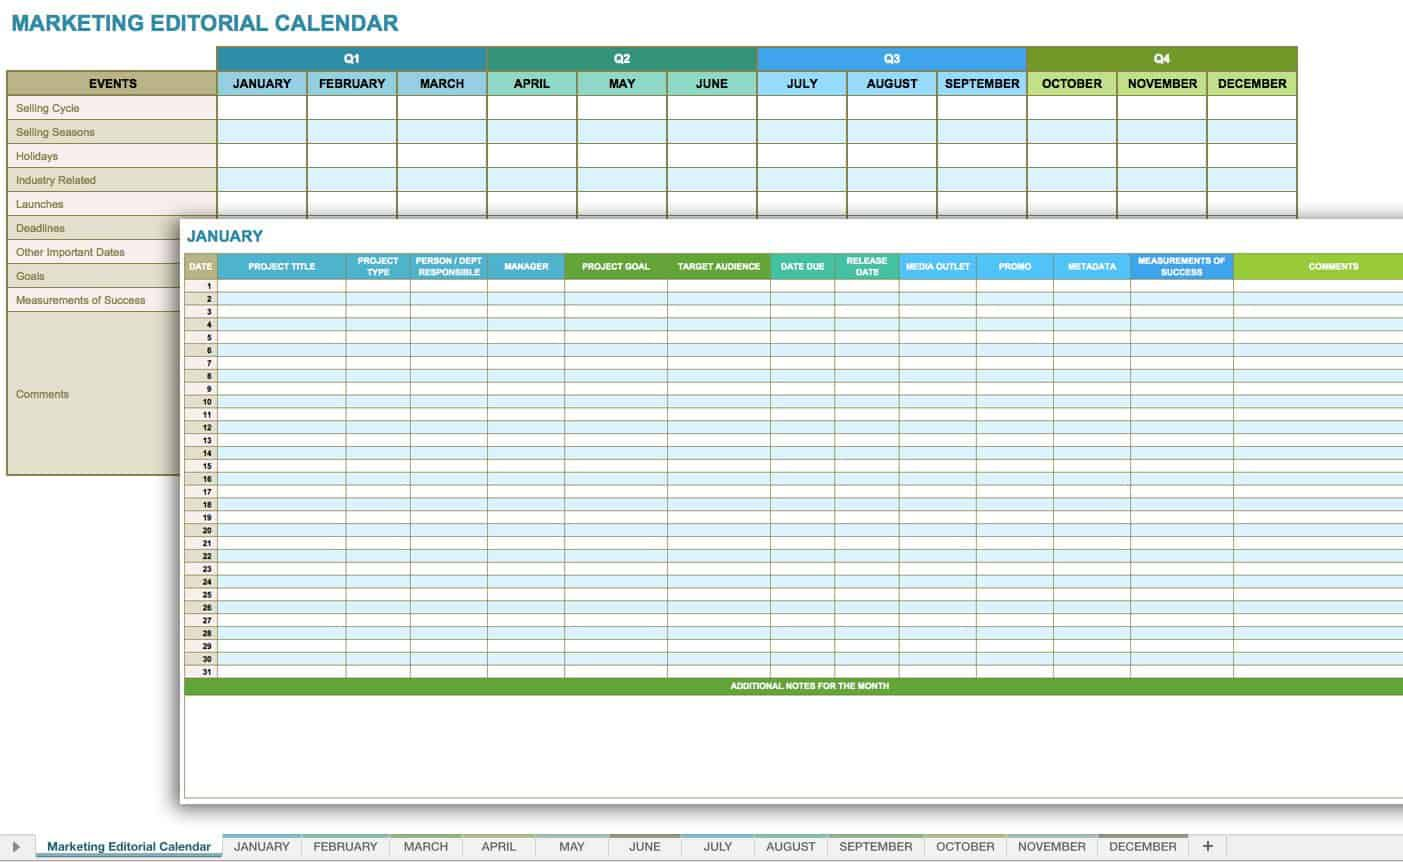 005 Exceptional Social Media Editorial Calendar Template High Def  Content Excel 2020 Free DownloadFull